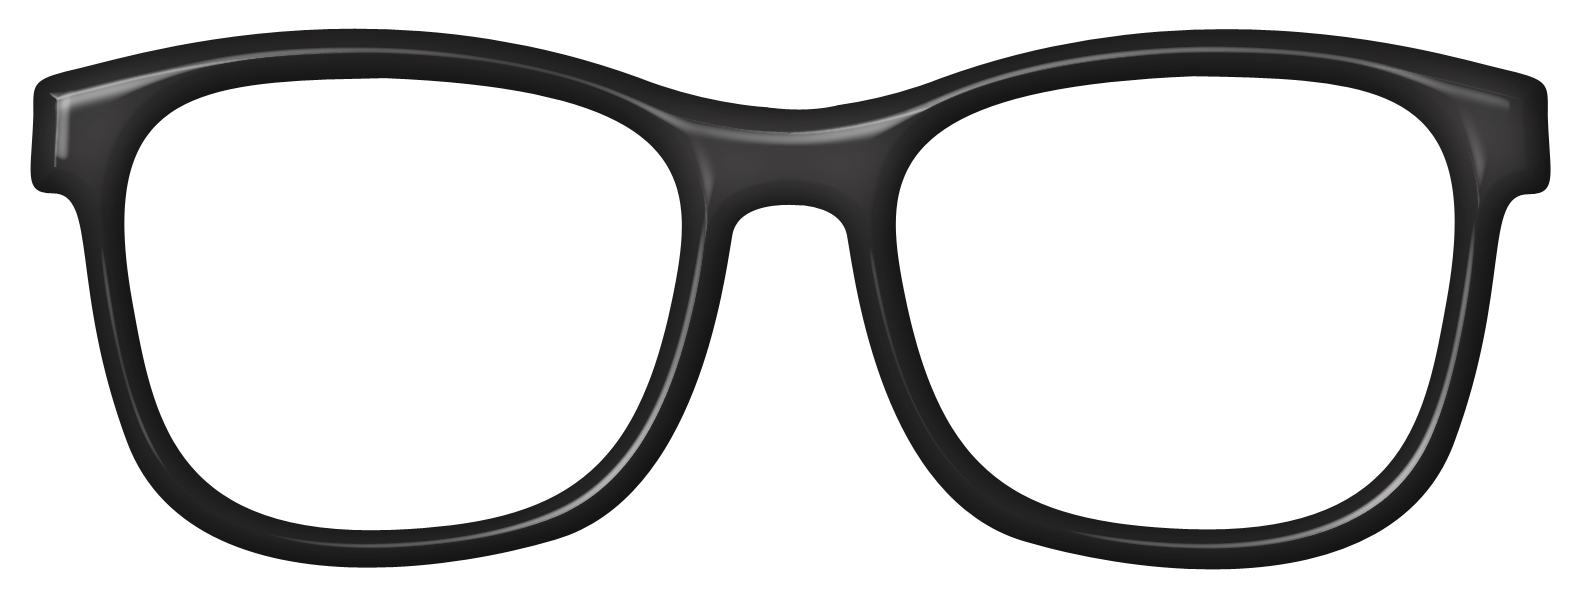 Glasses image printable s. Glass clipart prop